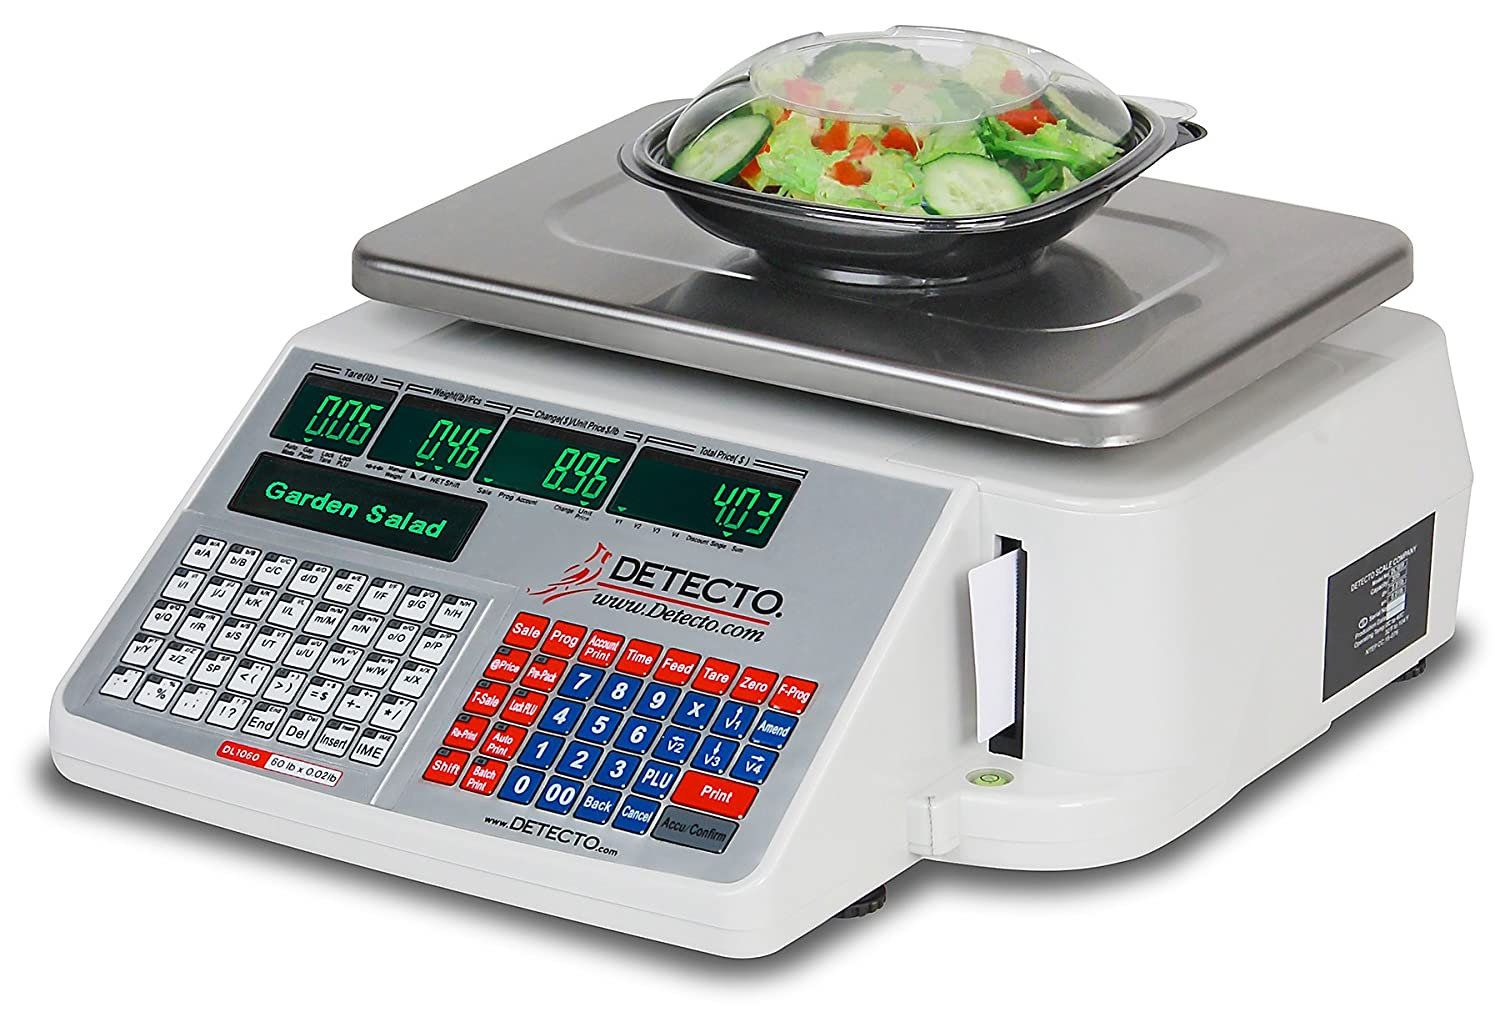 Detecto DL1060 Deli Scale with Integral Printer, 60 lb. x 0.02 lb.